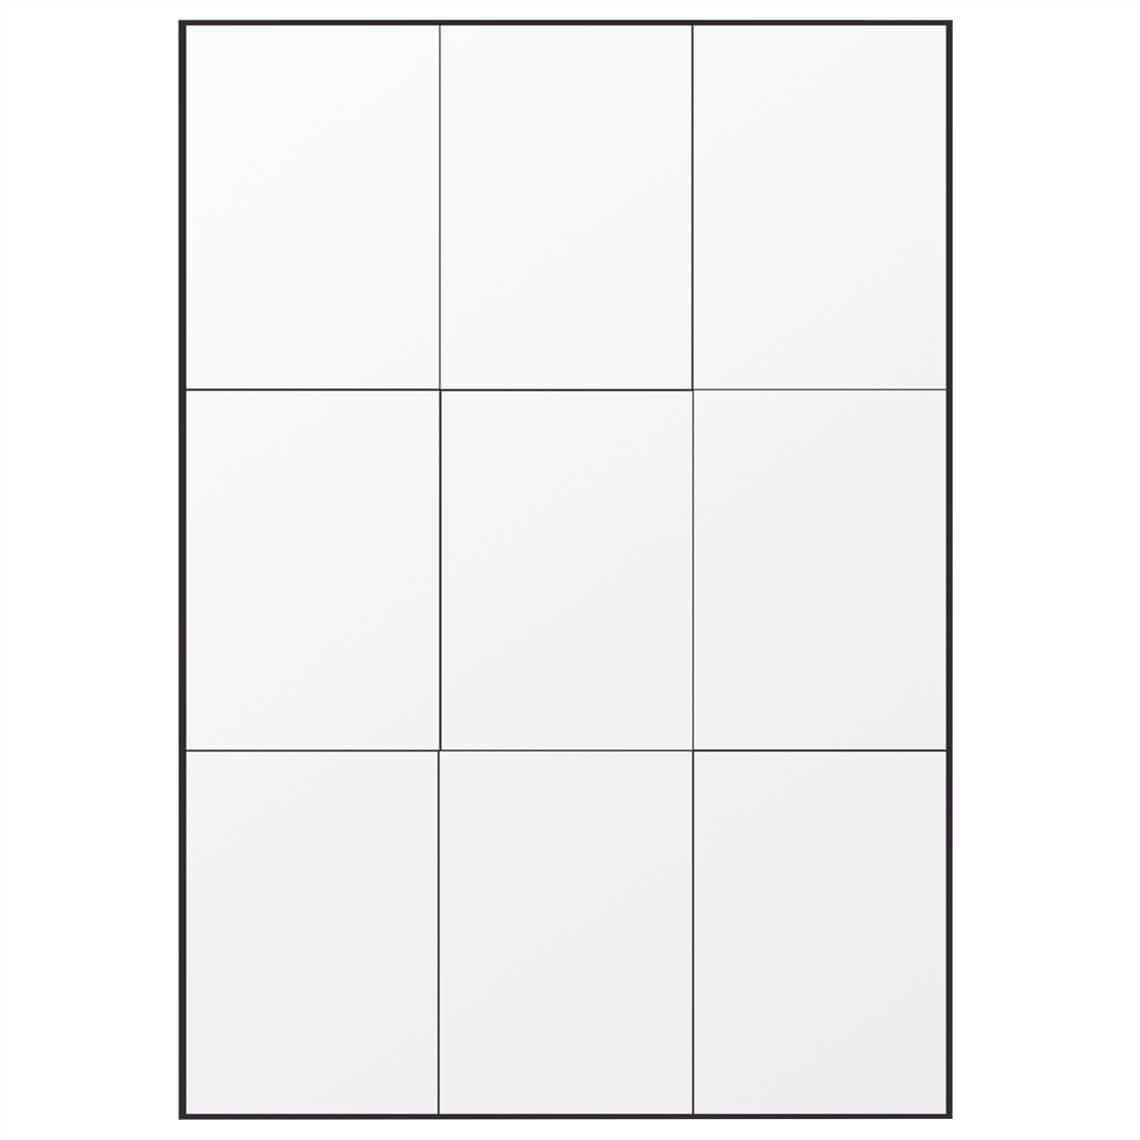 Grid Mirror Size W 90cm x D 4cm x H 135cm Freedom by Freedom, a Mirrors for sale on Style Sourcebook